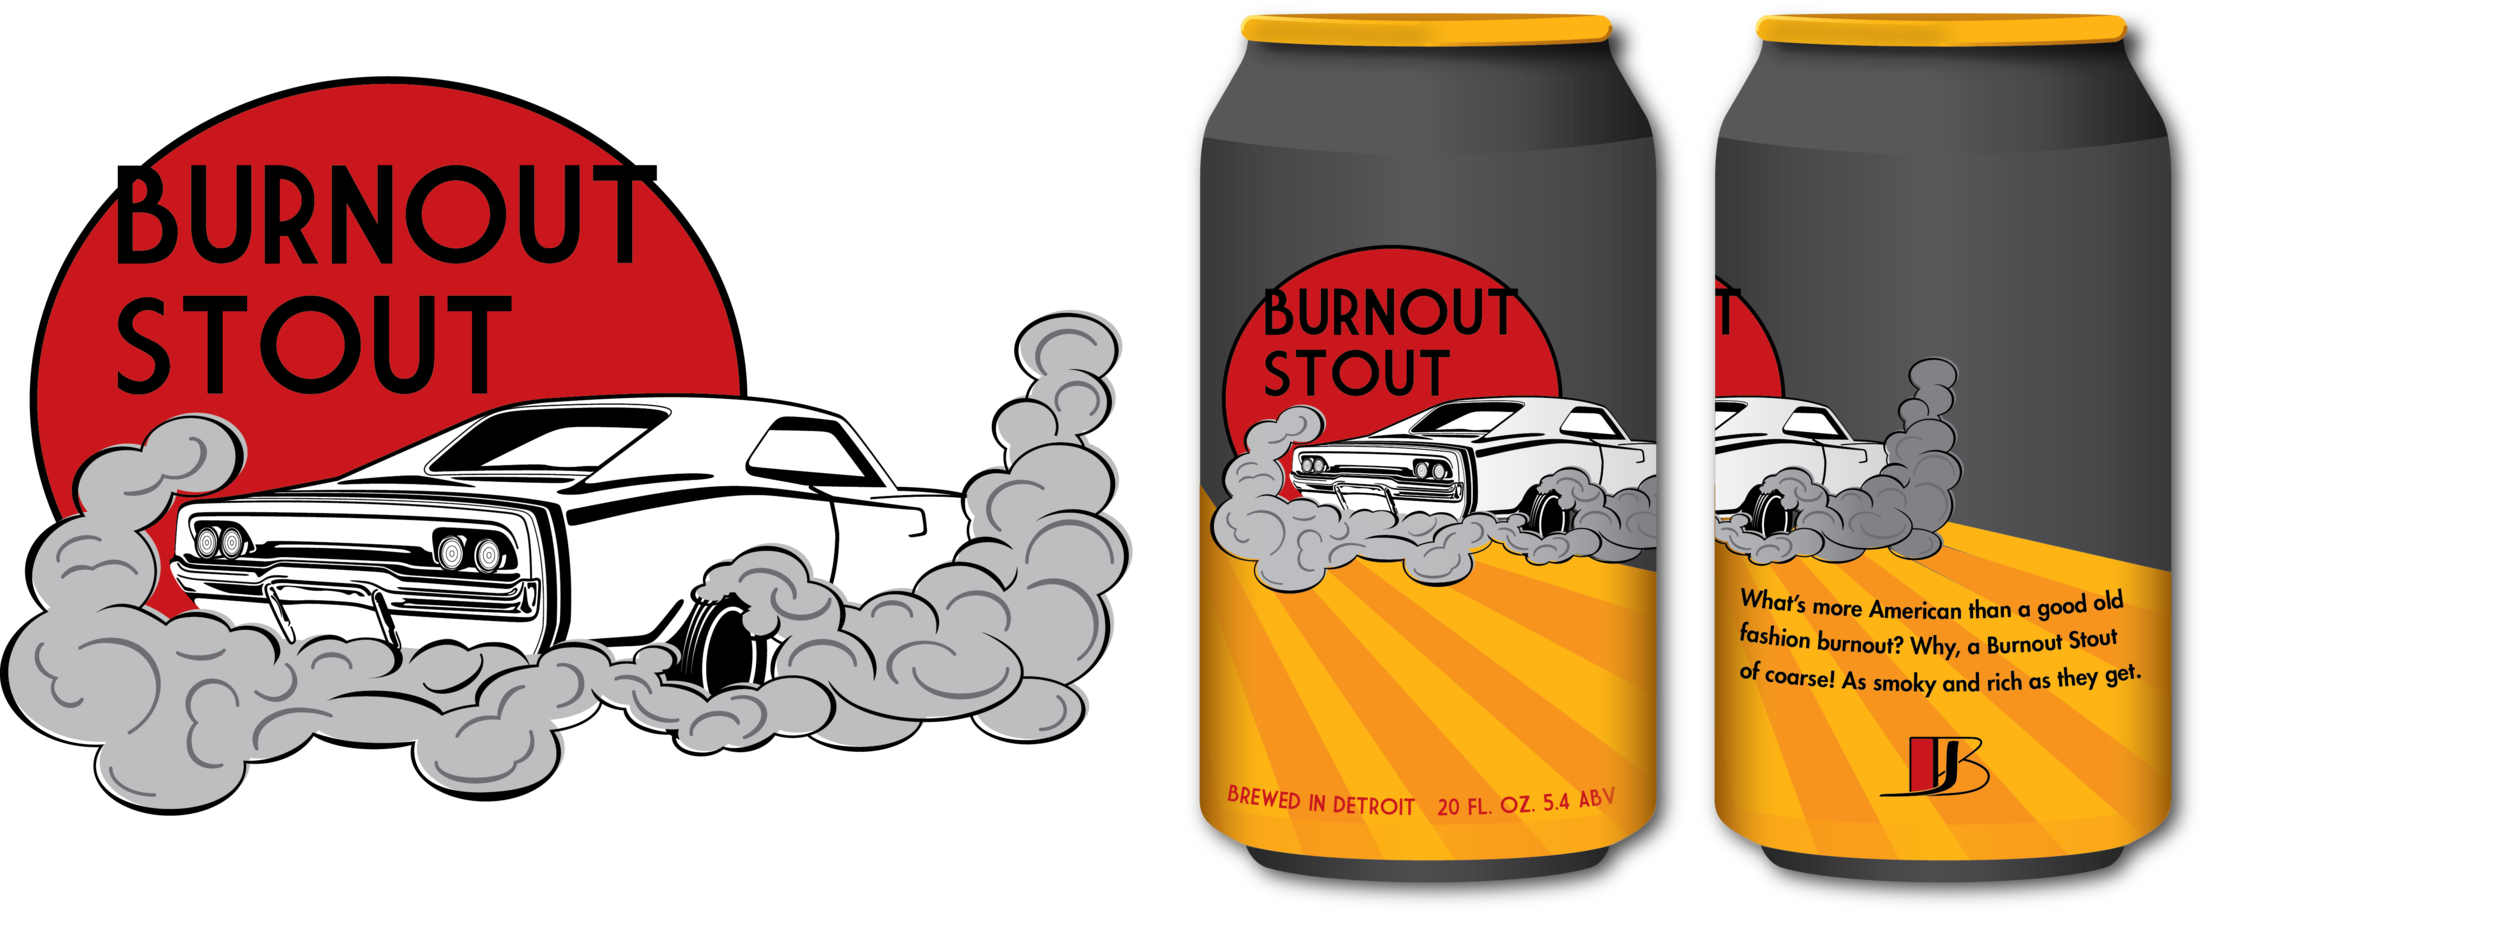 What's more American than a good old fashioned burnout? Why, a Burnout Stout, of course! This stout beer is full of smoky, rich flavors.- In progress